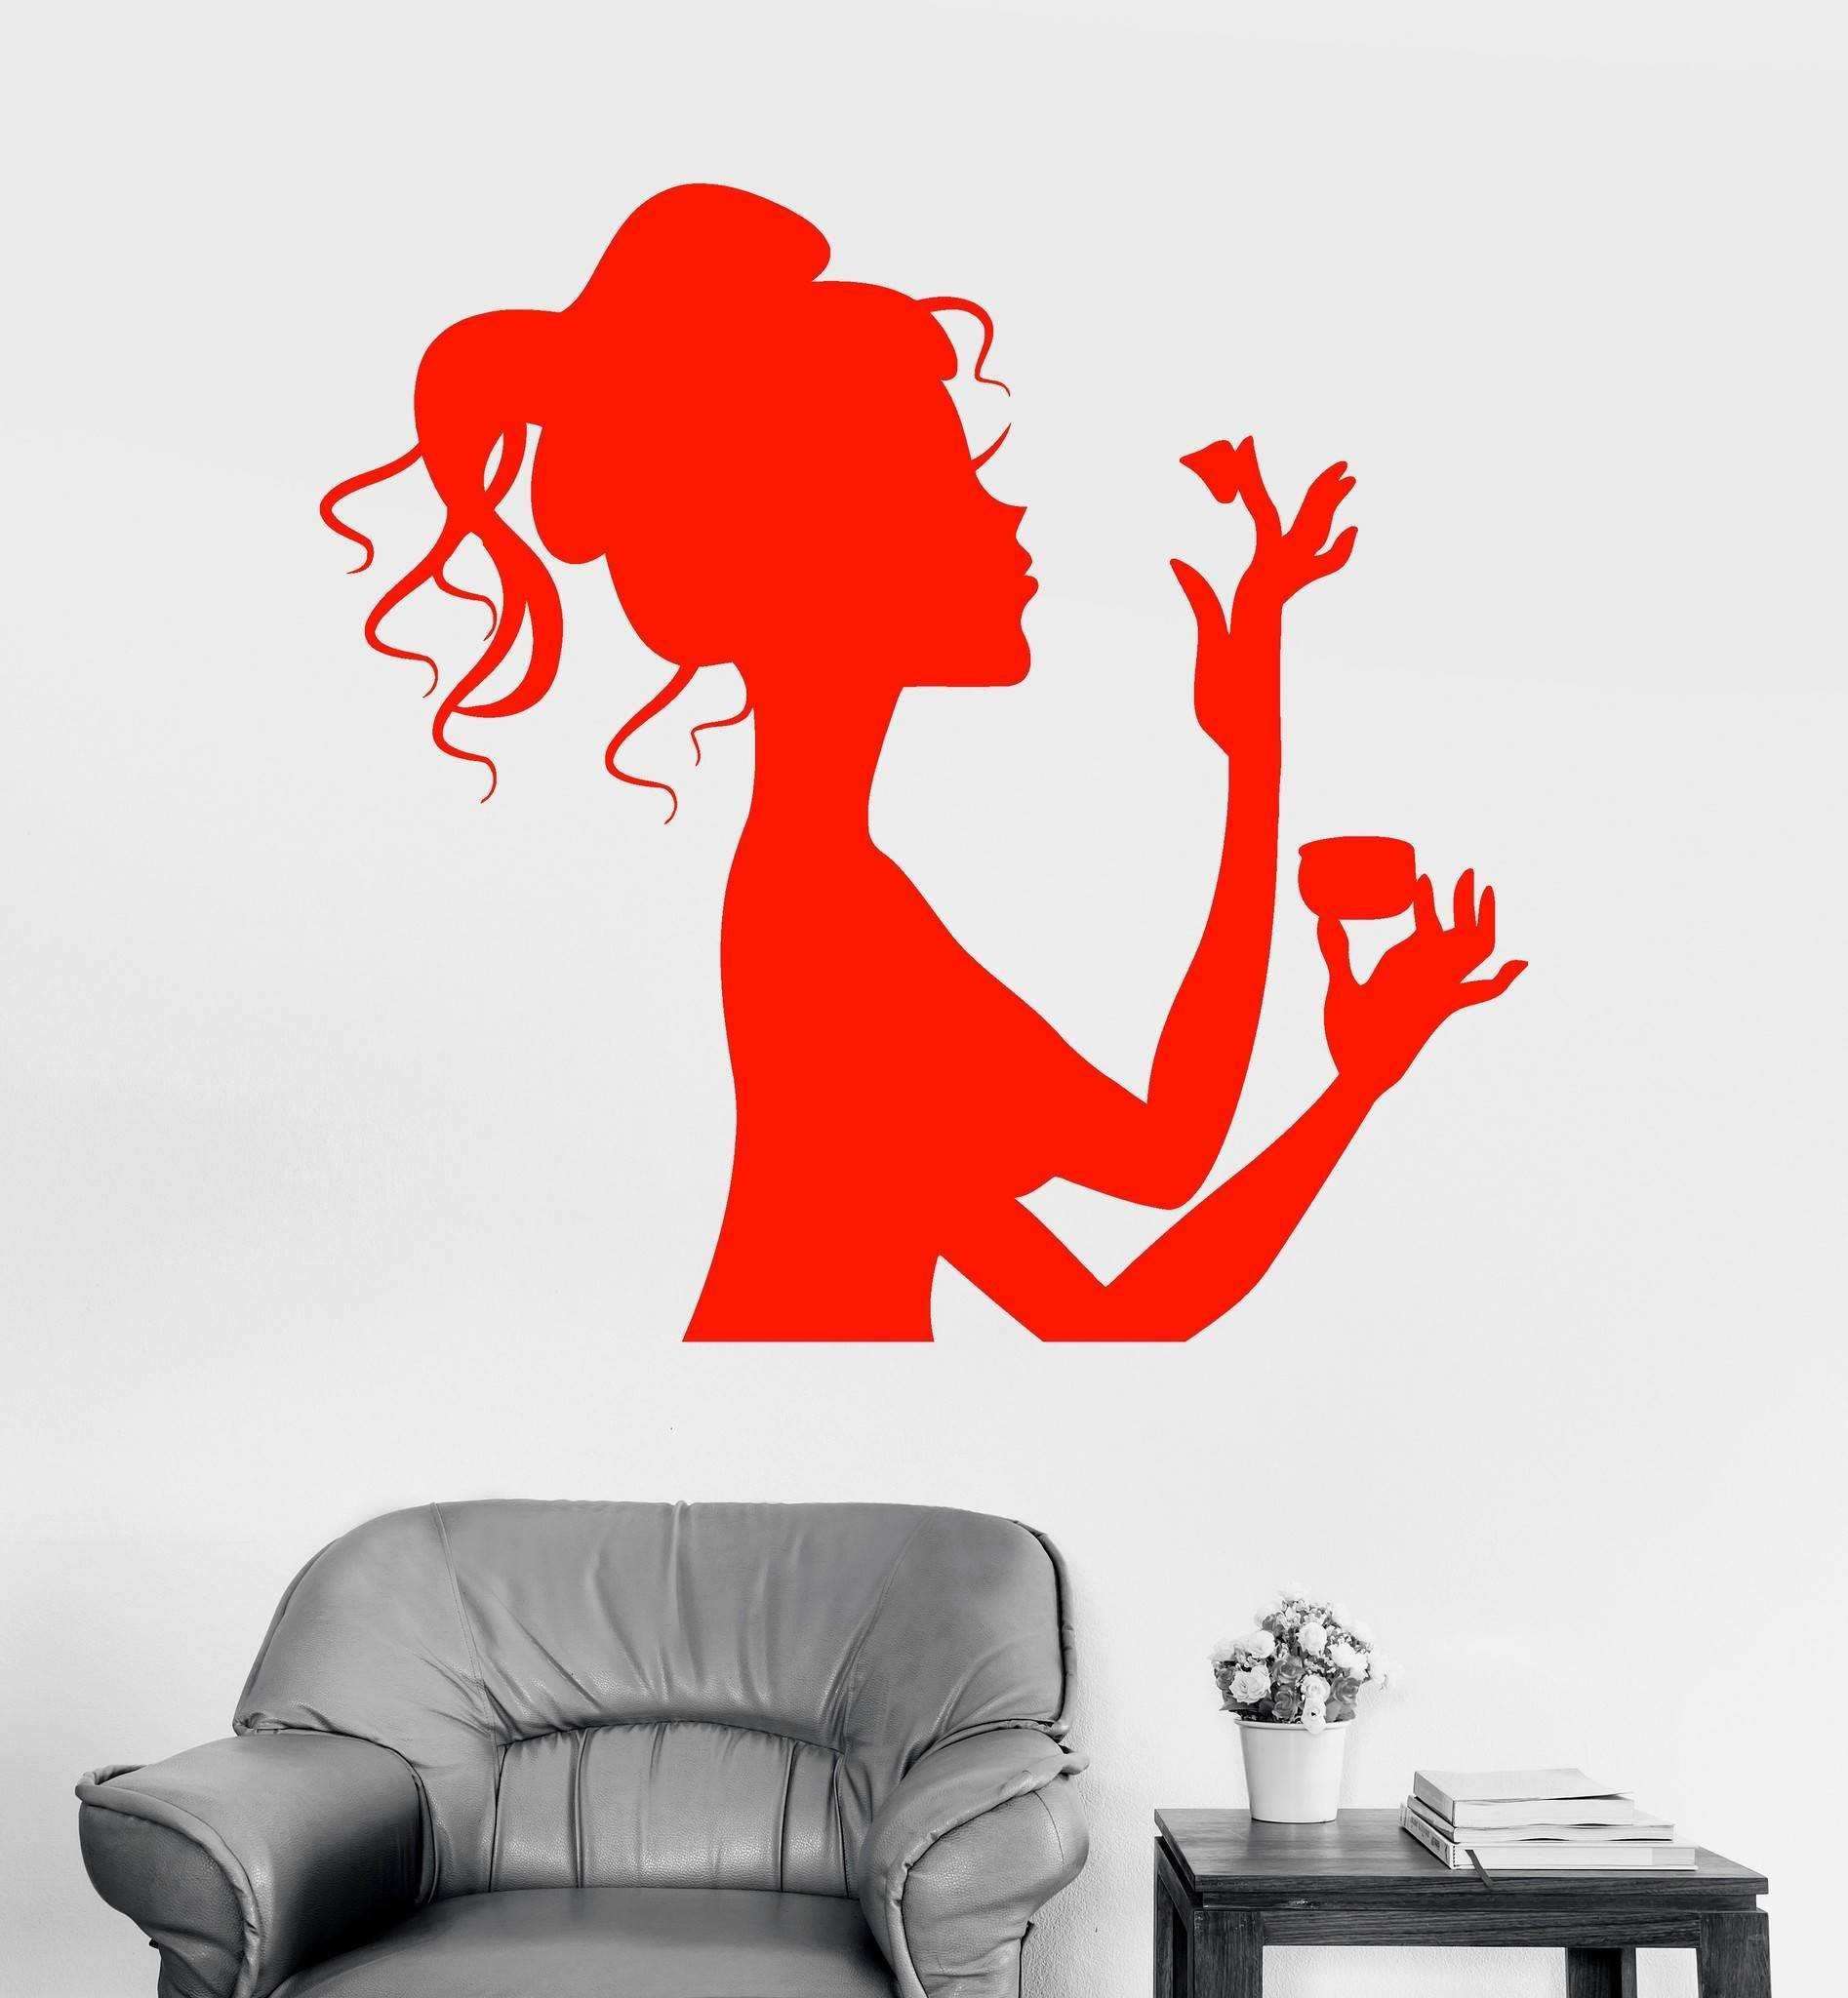 Removable Wall Decals for Bedroom Awesome Wall Decals for Bedroom